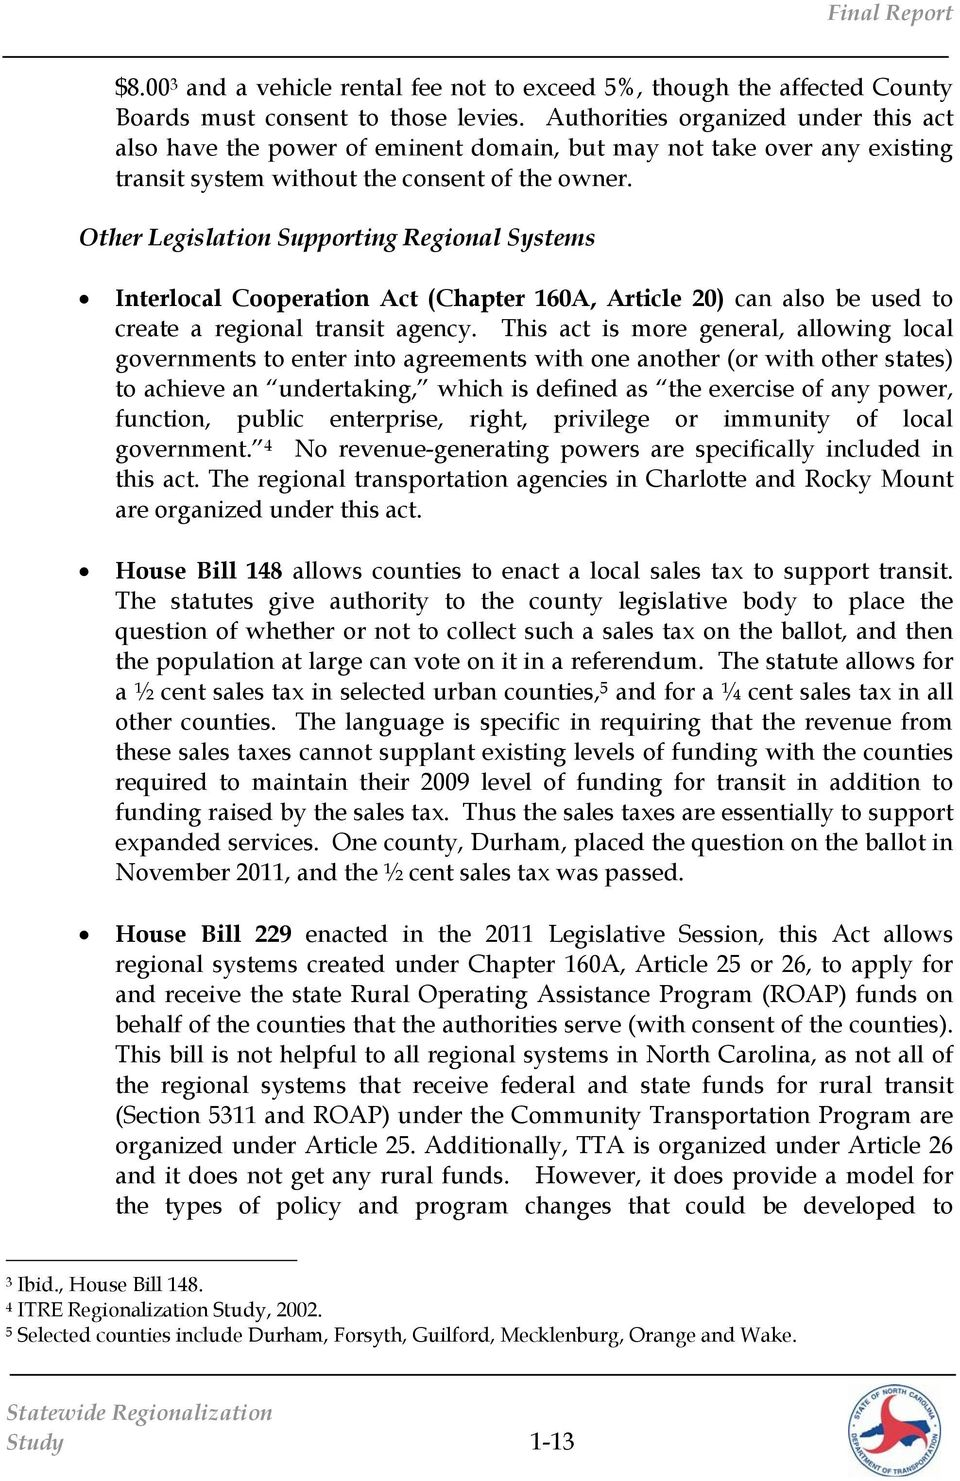 Other Legislation Supporting Regional Systems Interlocal Cooperation Act (Chapter 160A, Article 20) can also be used to create a regional transit agency.